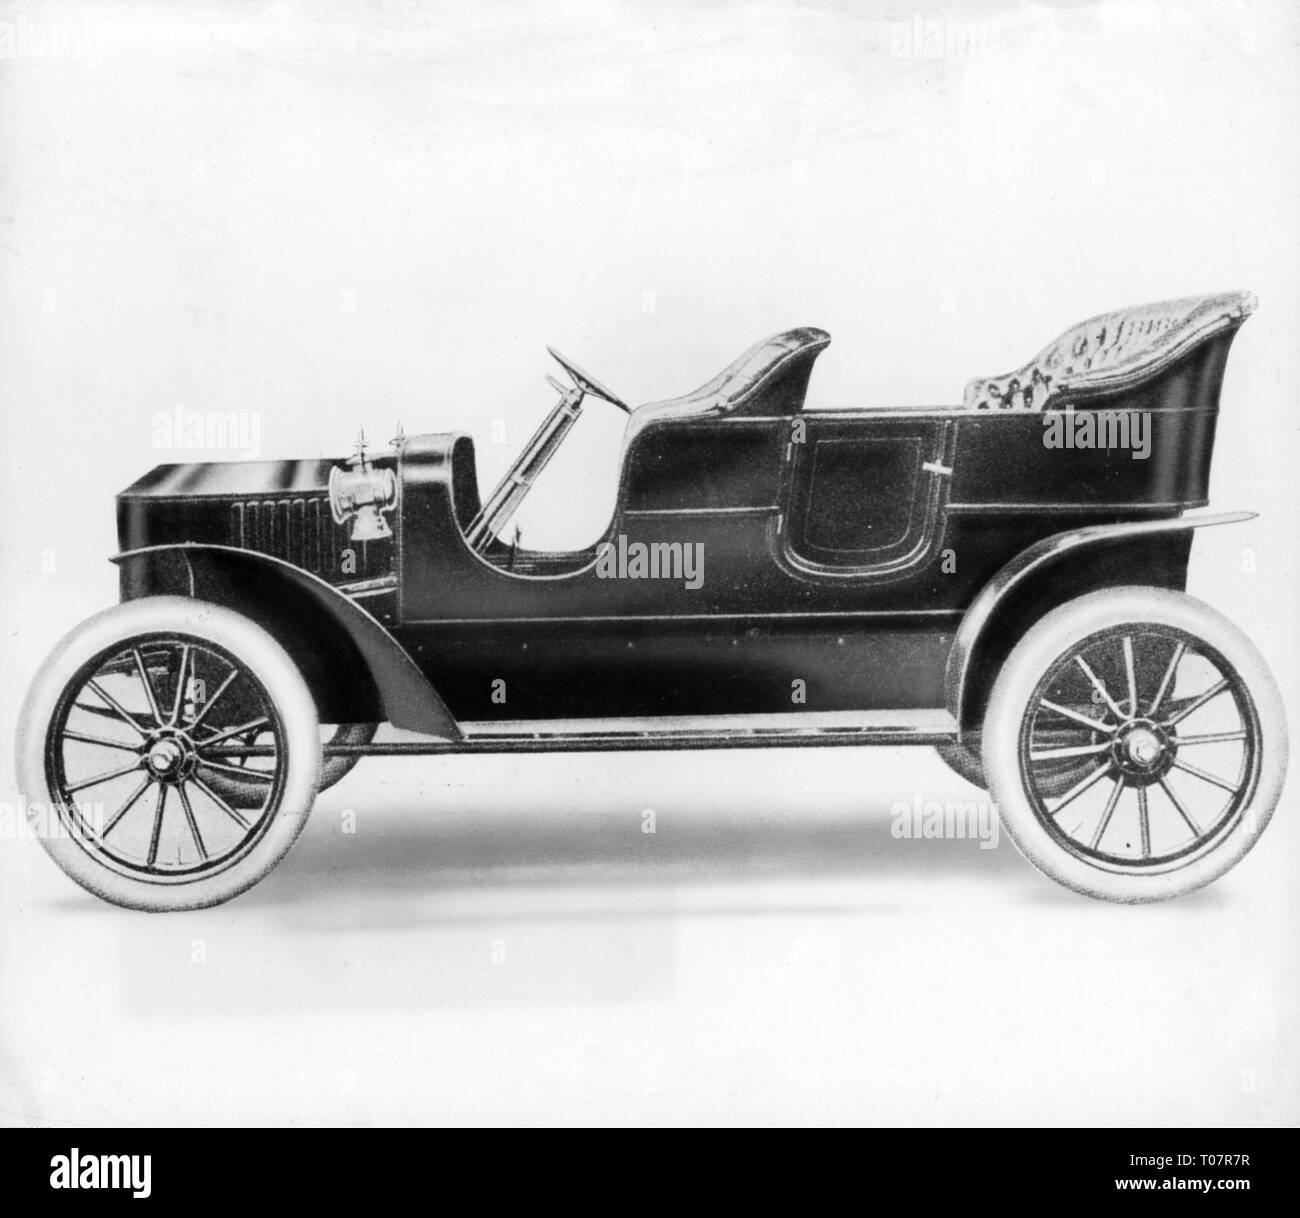 transport / transportation, car, vehicle variants, Stanley Steamer Model K Semi-Race, 1908, Additional-Rights-Clearance-Info-Not-Available - Stock Image